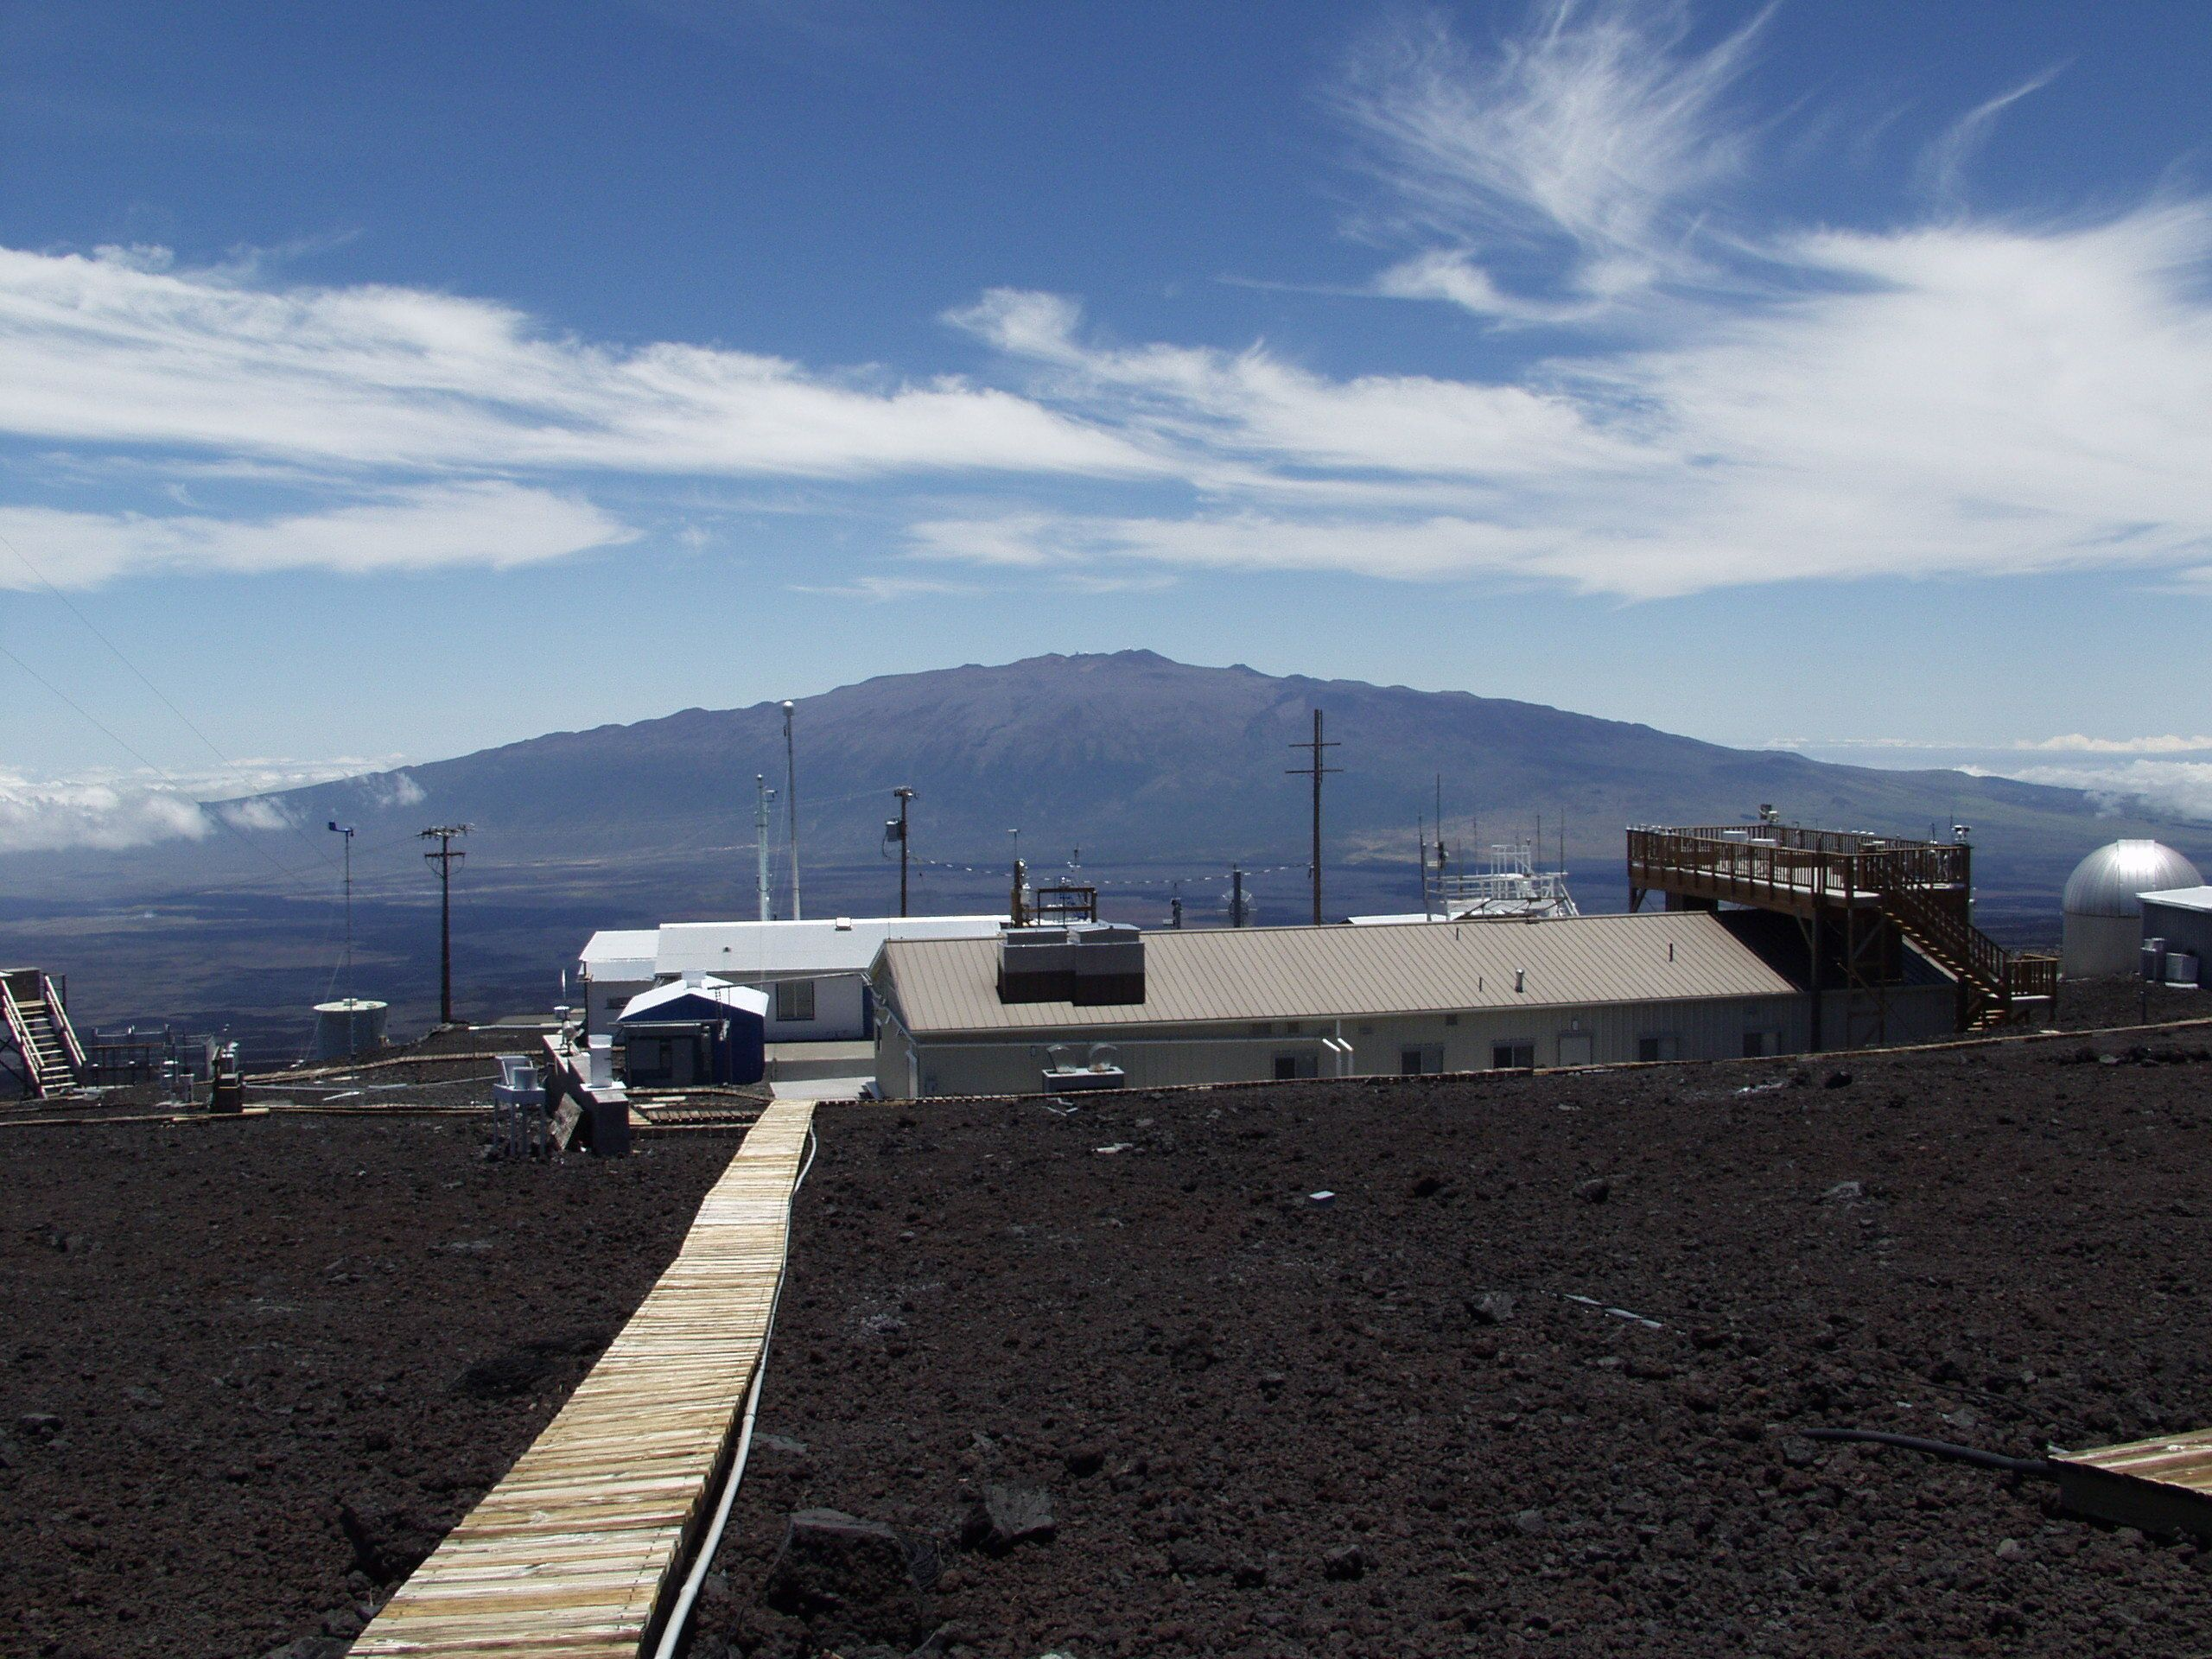 This photo provided NOAA, shows NOAA's Mauna Loa Observatory in Hawaii. Measurements show the amount of heat-trapping carbon dioxide in the air jumped by the biggest amount on record last month, a rise amplified by El Nino, scientists say. Carbon dioxide levels increased by 4.16 parts per million in April compared to a year earlier, according to readings at Mauna Loa in Hawaii. Until this year, the biggest increase was 3.7 ppm. Records go back to 1950. (NOAA via AP)